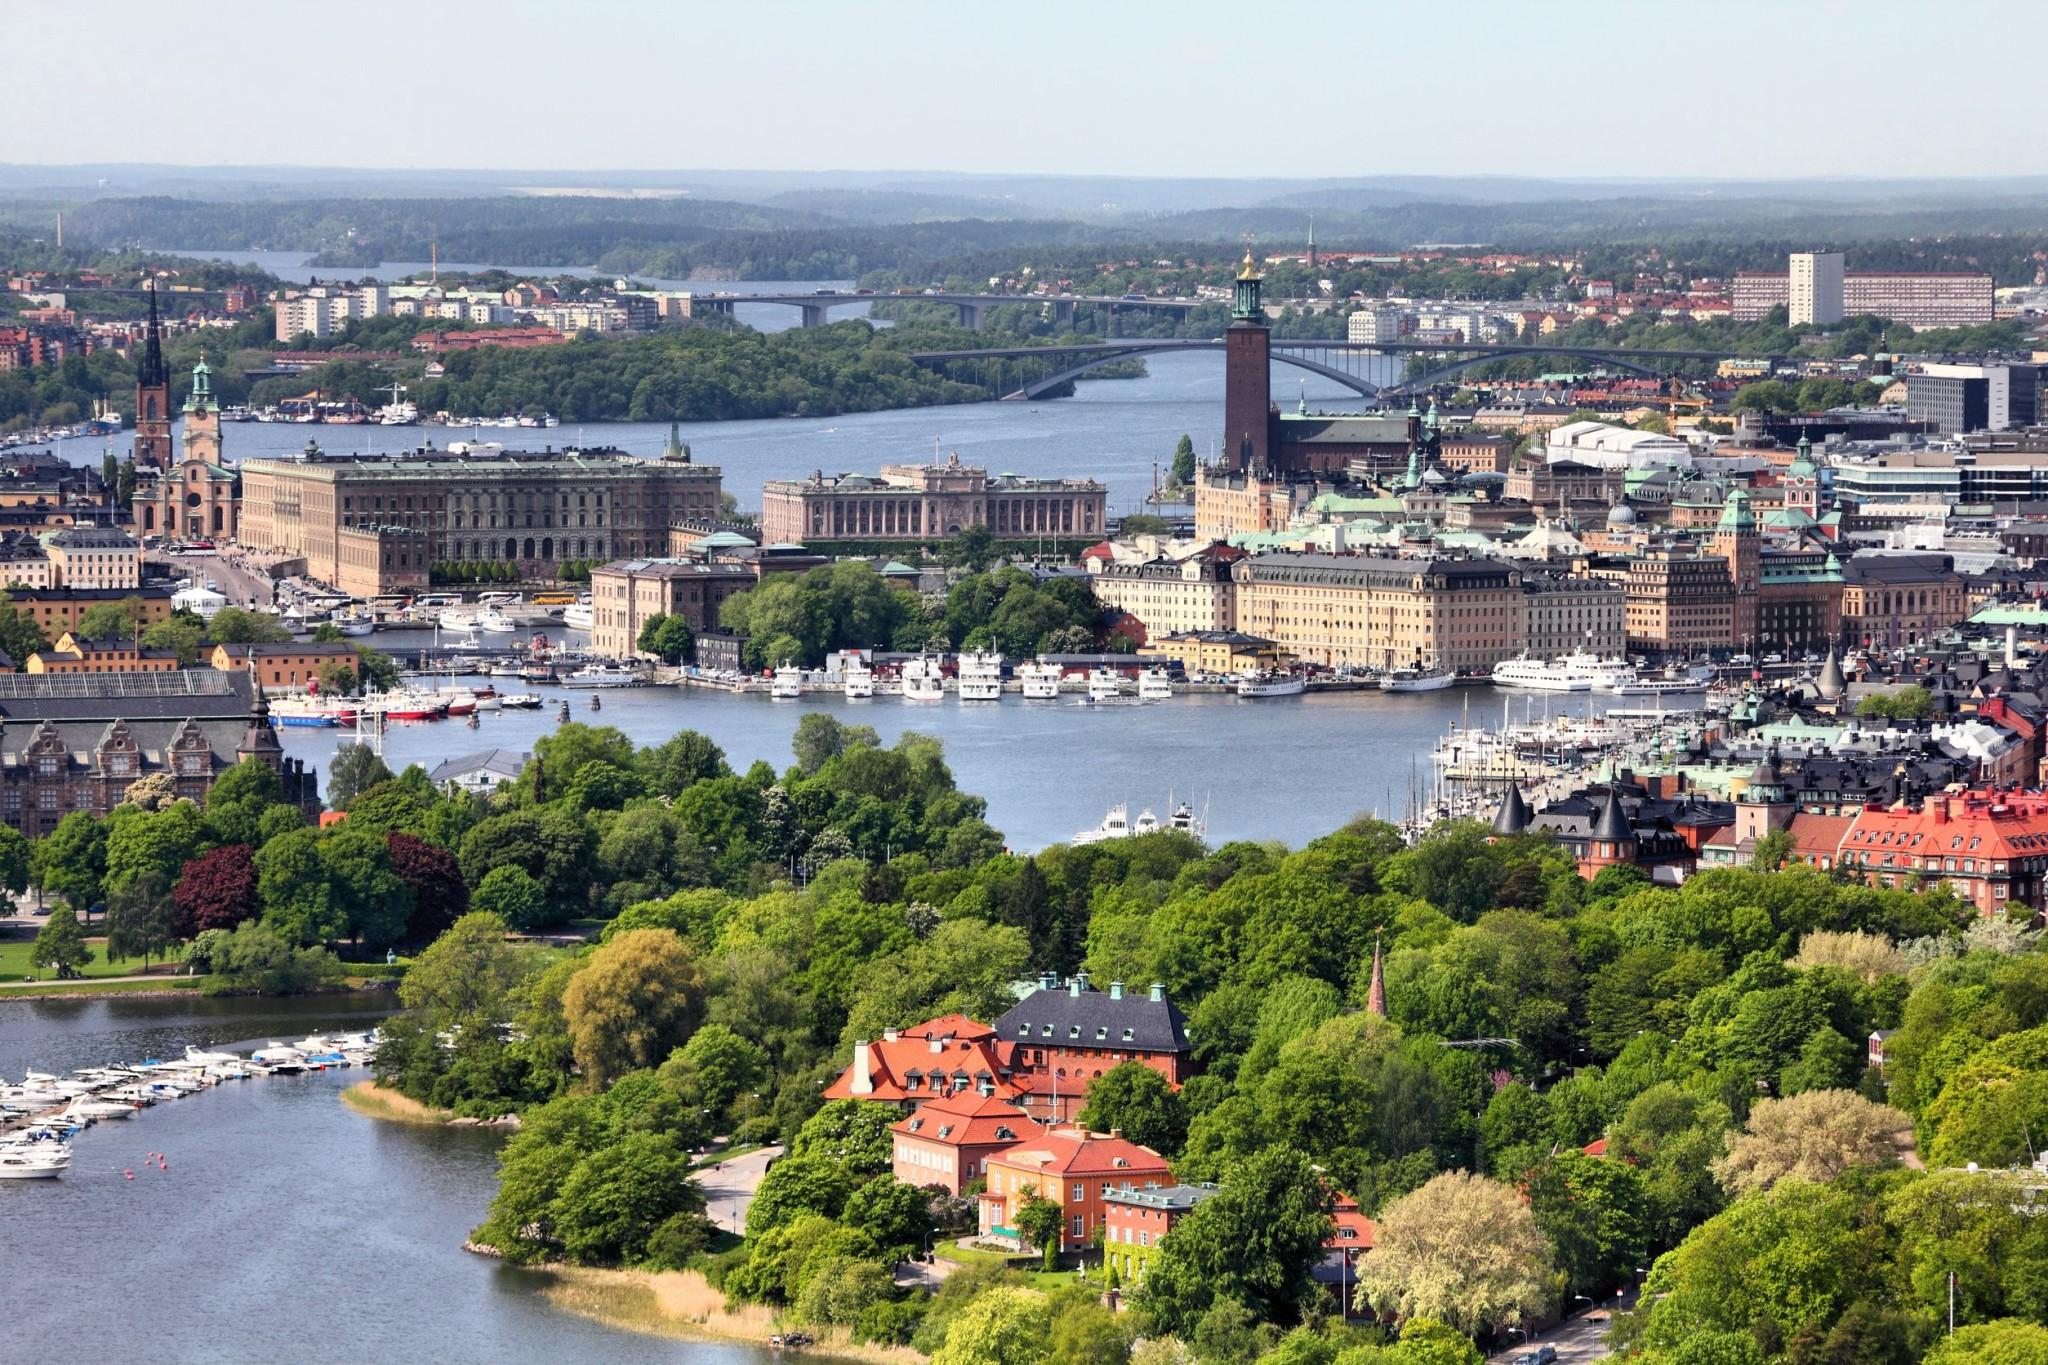 Work in Europe (Sweden, Denmark, Germany) - Your job search from Dallas to Stockholm